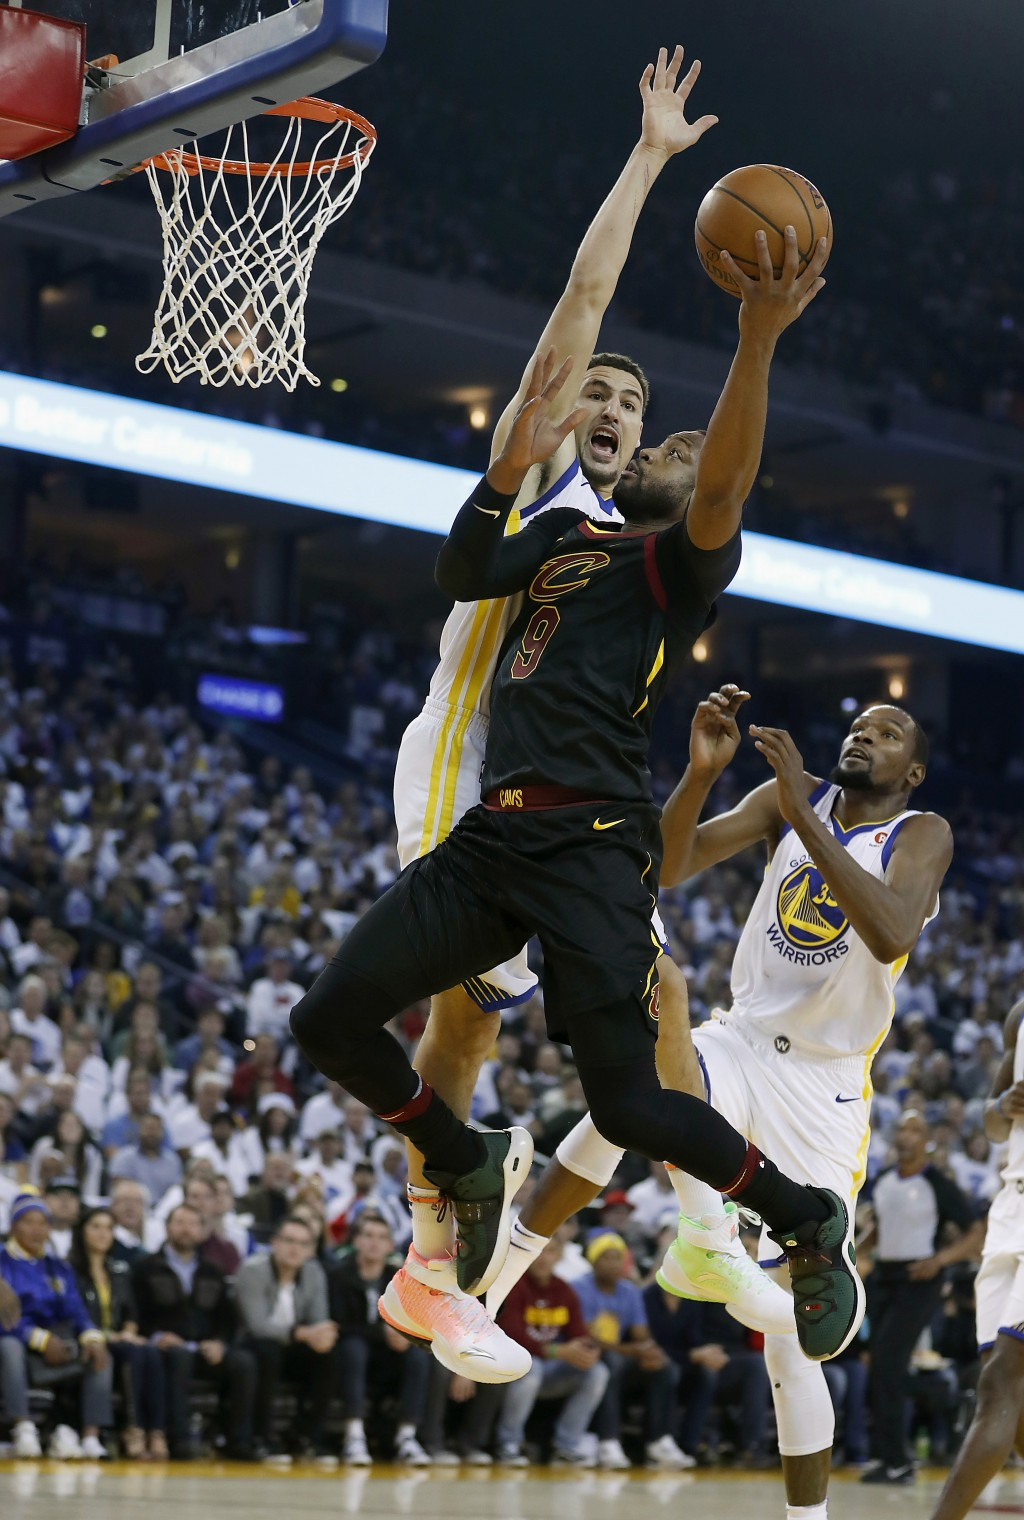 Cleveland Cavaliers guard Dwyane Wade (9) drives to the basket against Golden State Warriors guard Klay Thompson (11) during the first half of an NBA ...